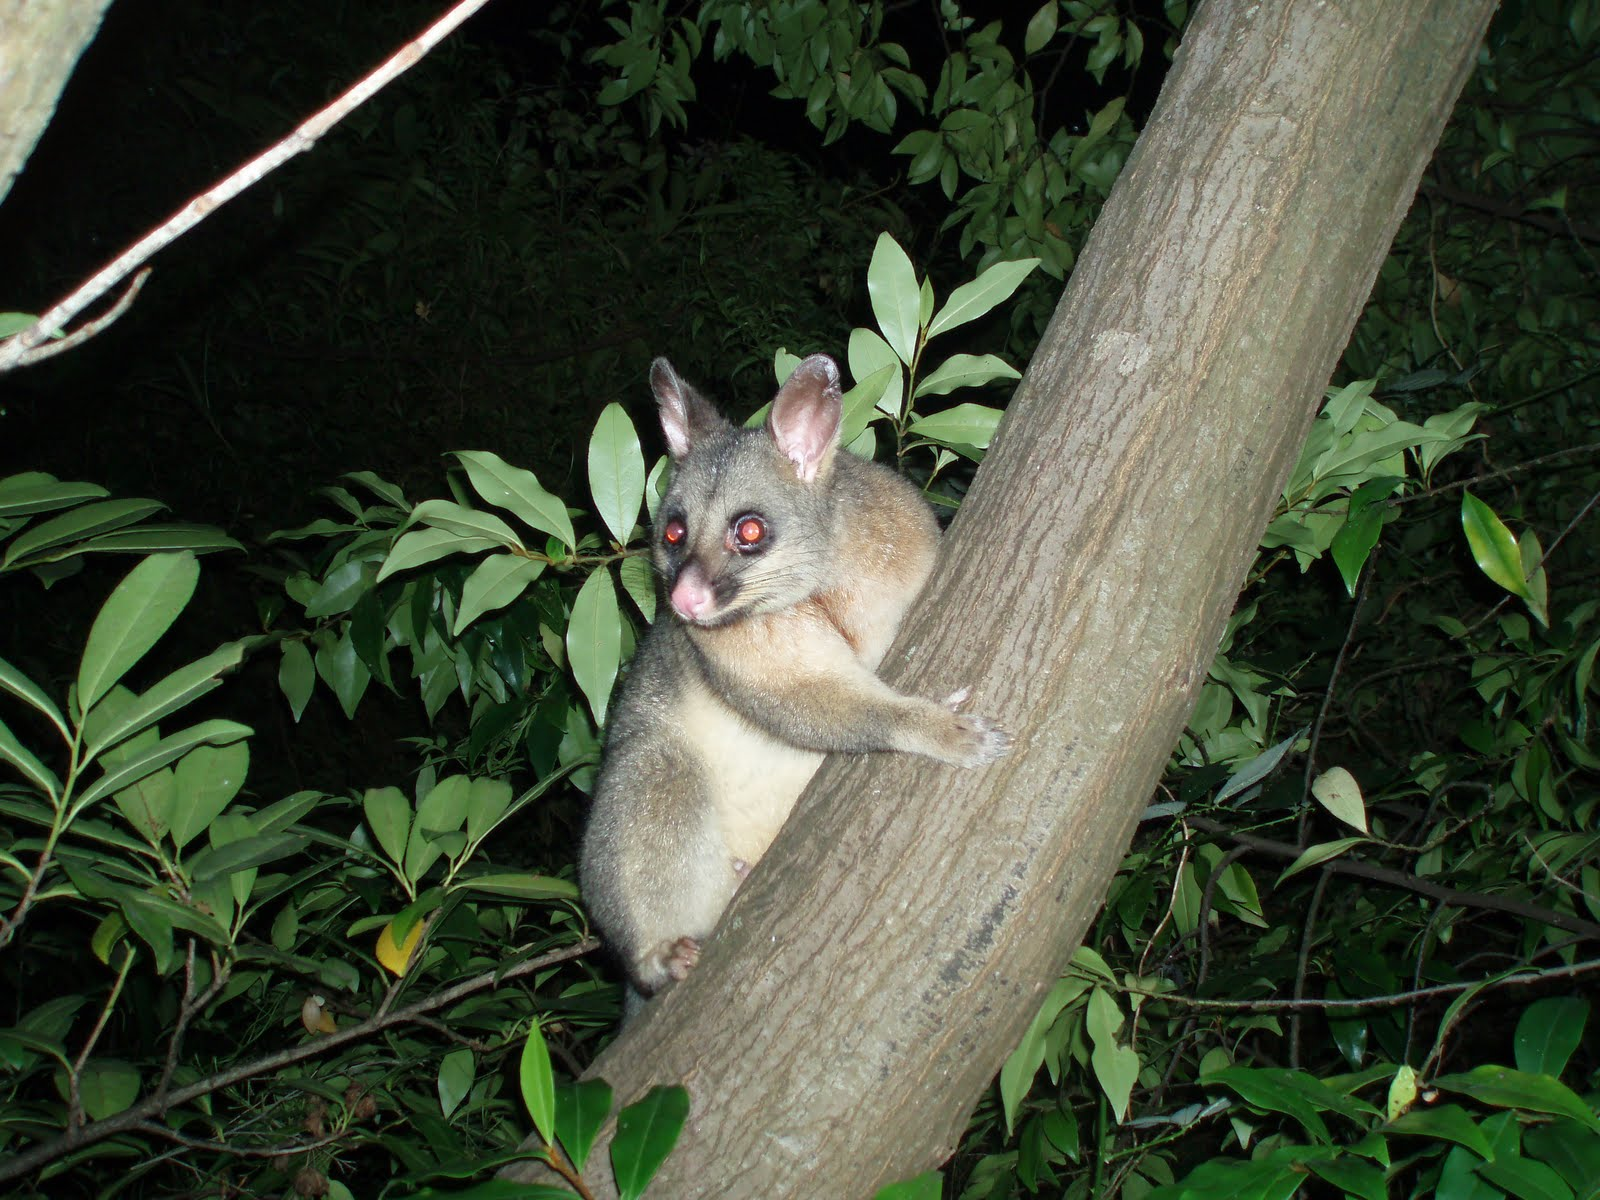 The Adventures of Batu Khan: There's a Possum in my Yard!